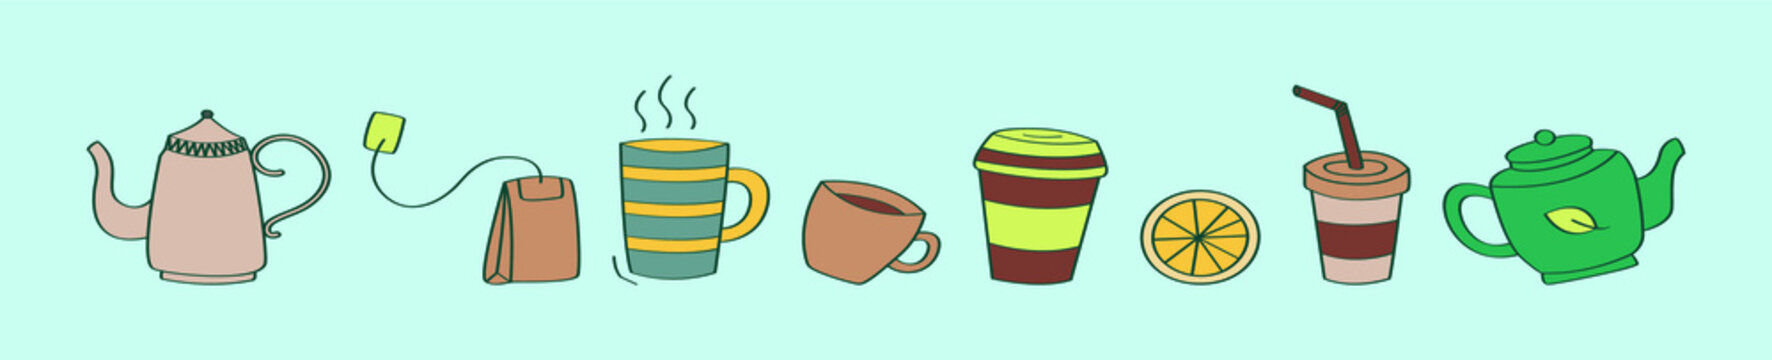 set of tea cartoon icon design template with various models. vector illustration isolated on blue background